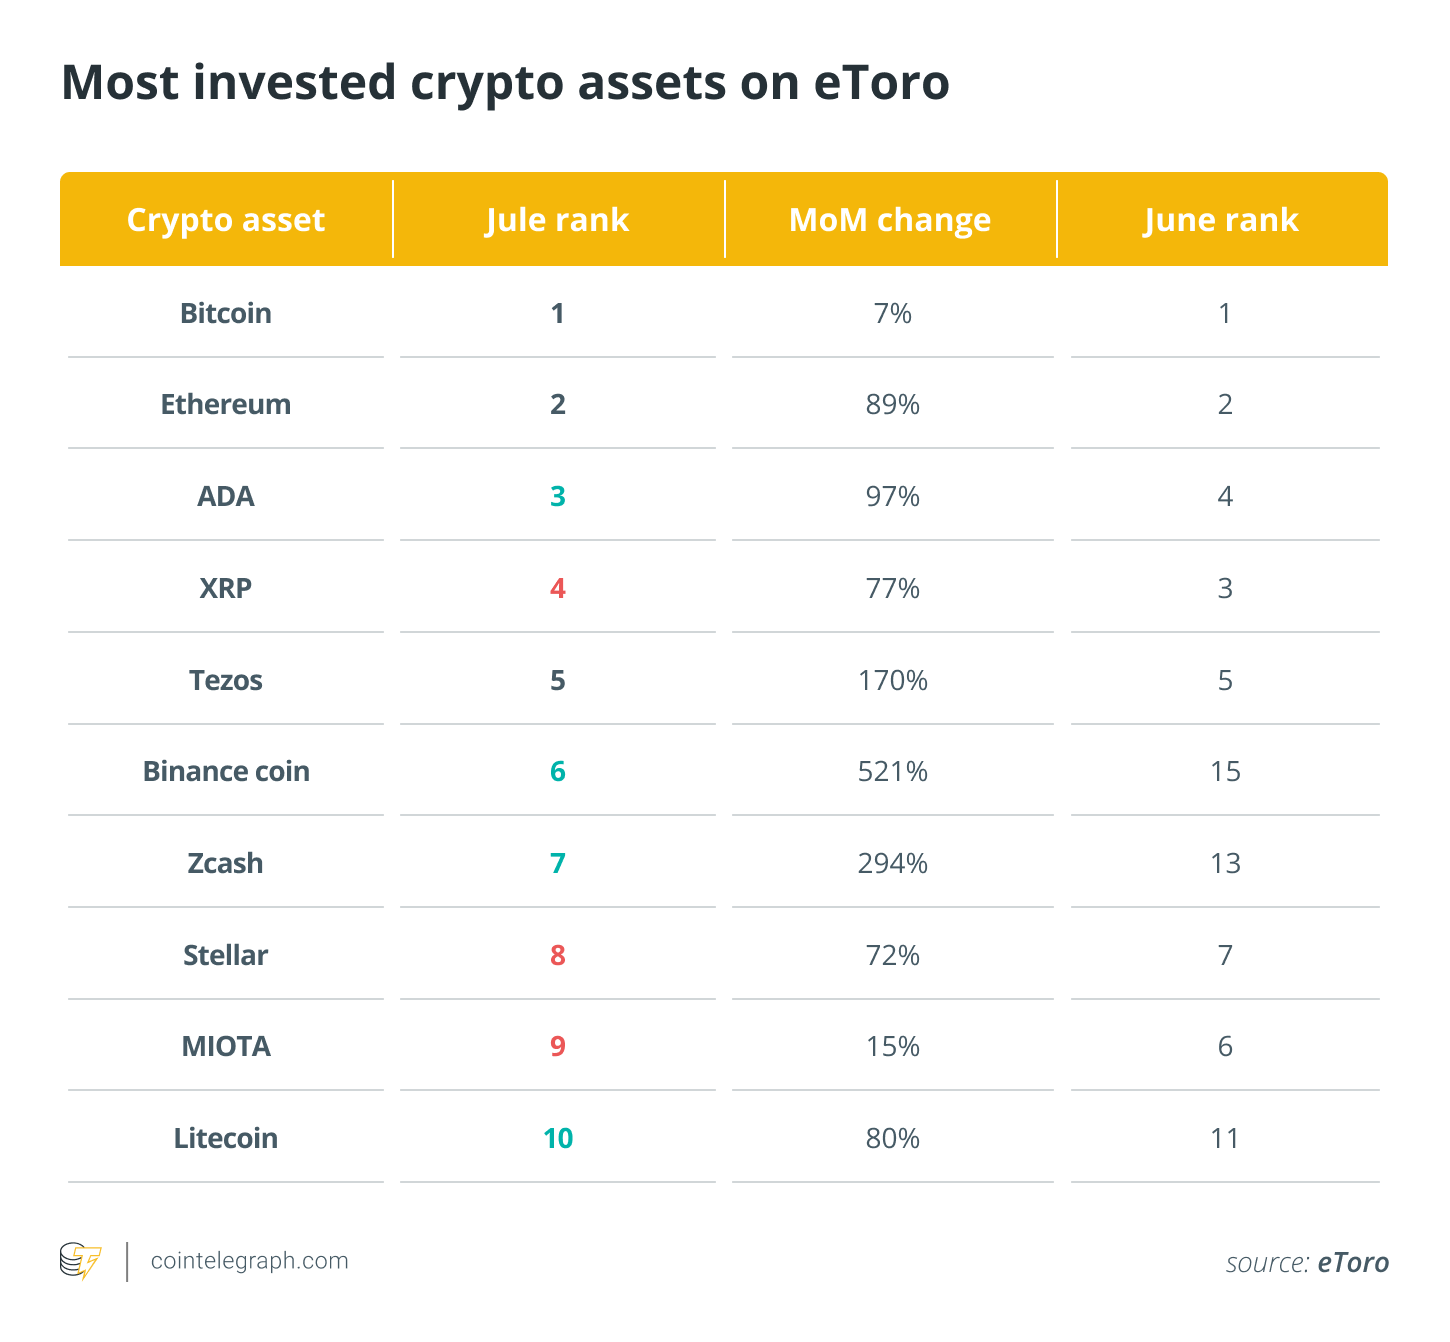 Most invested crypto assets on eToro